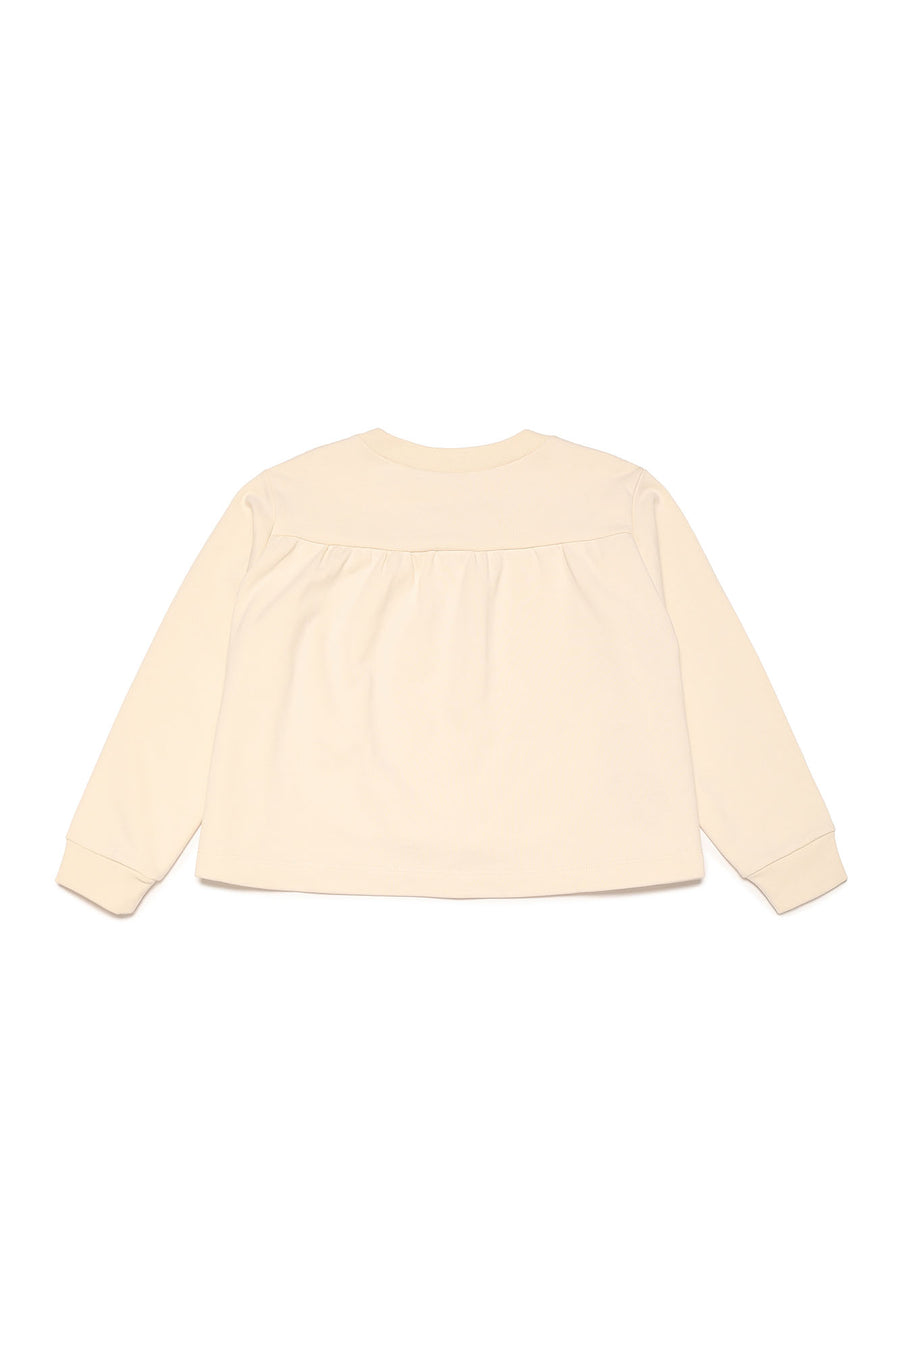 Ecru Sweatshirt by Marni